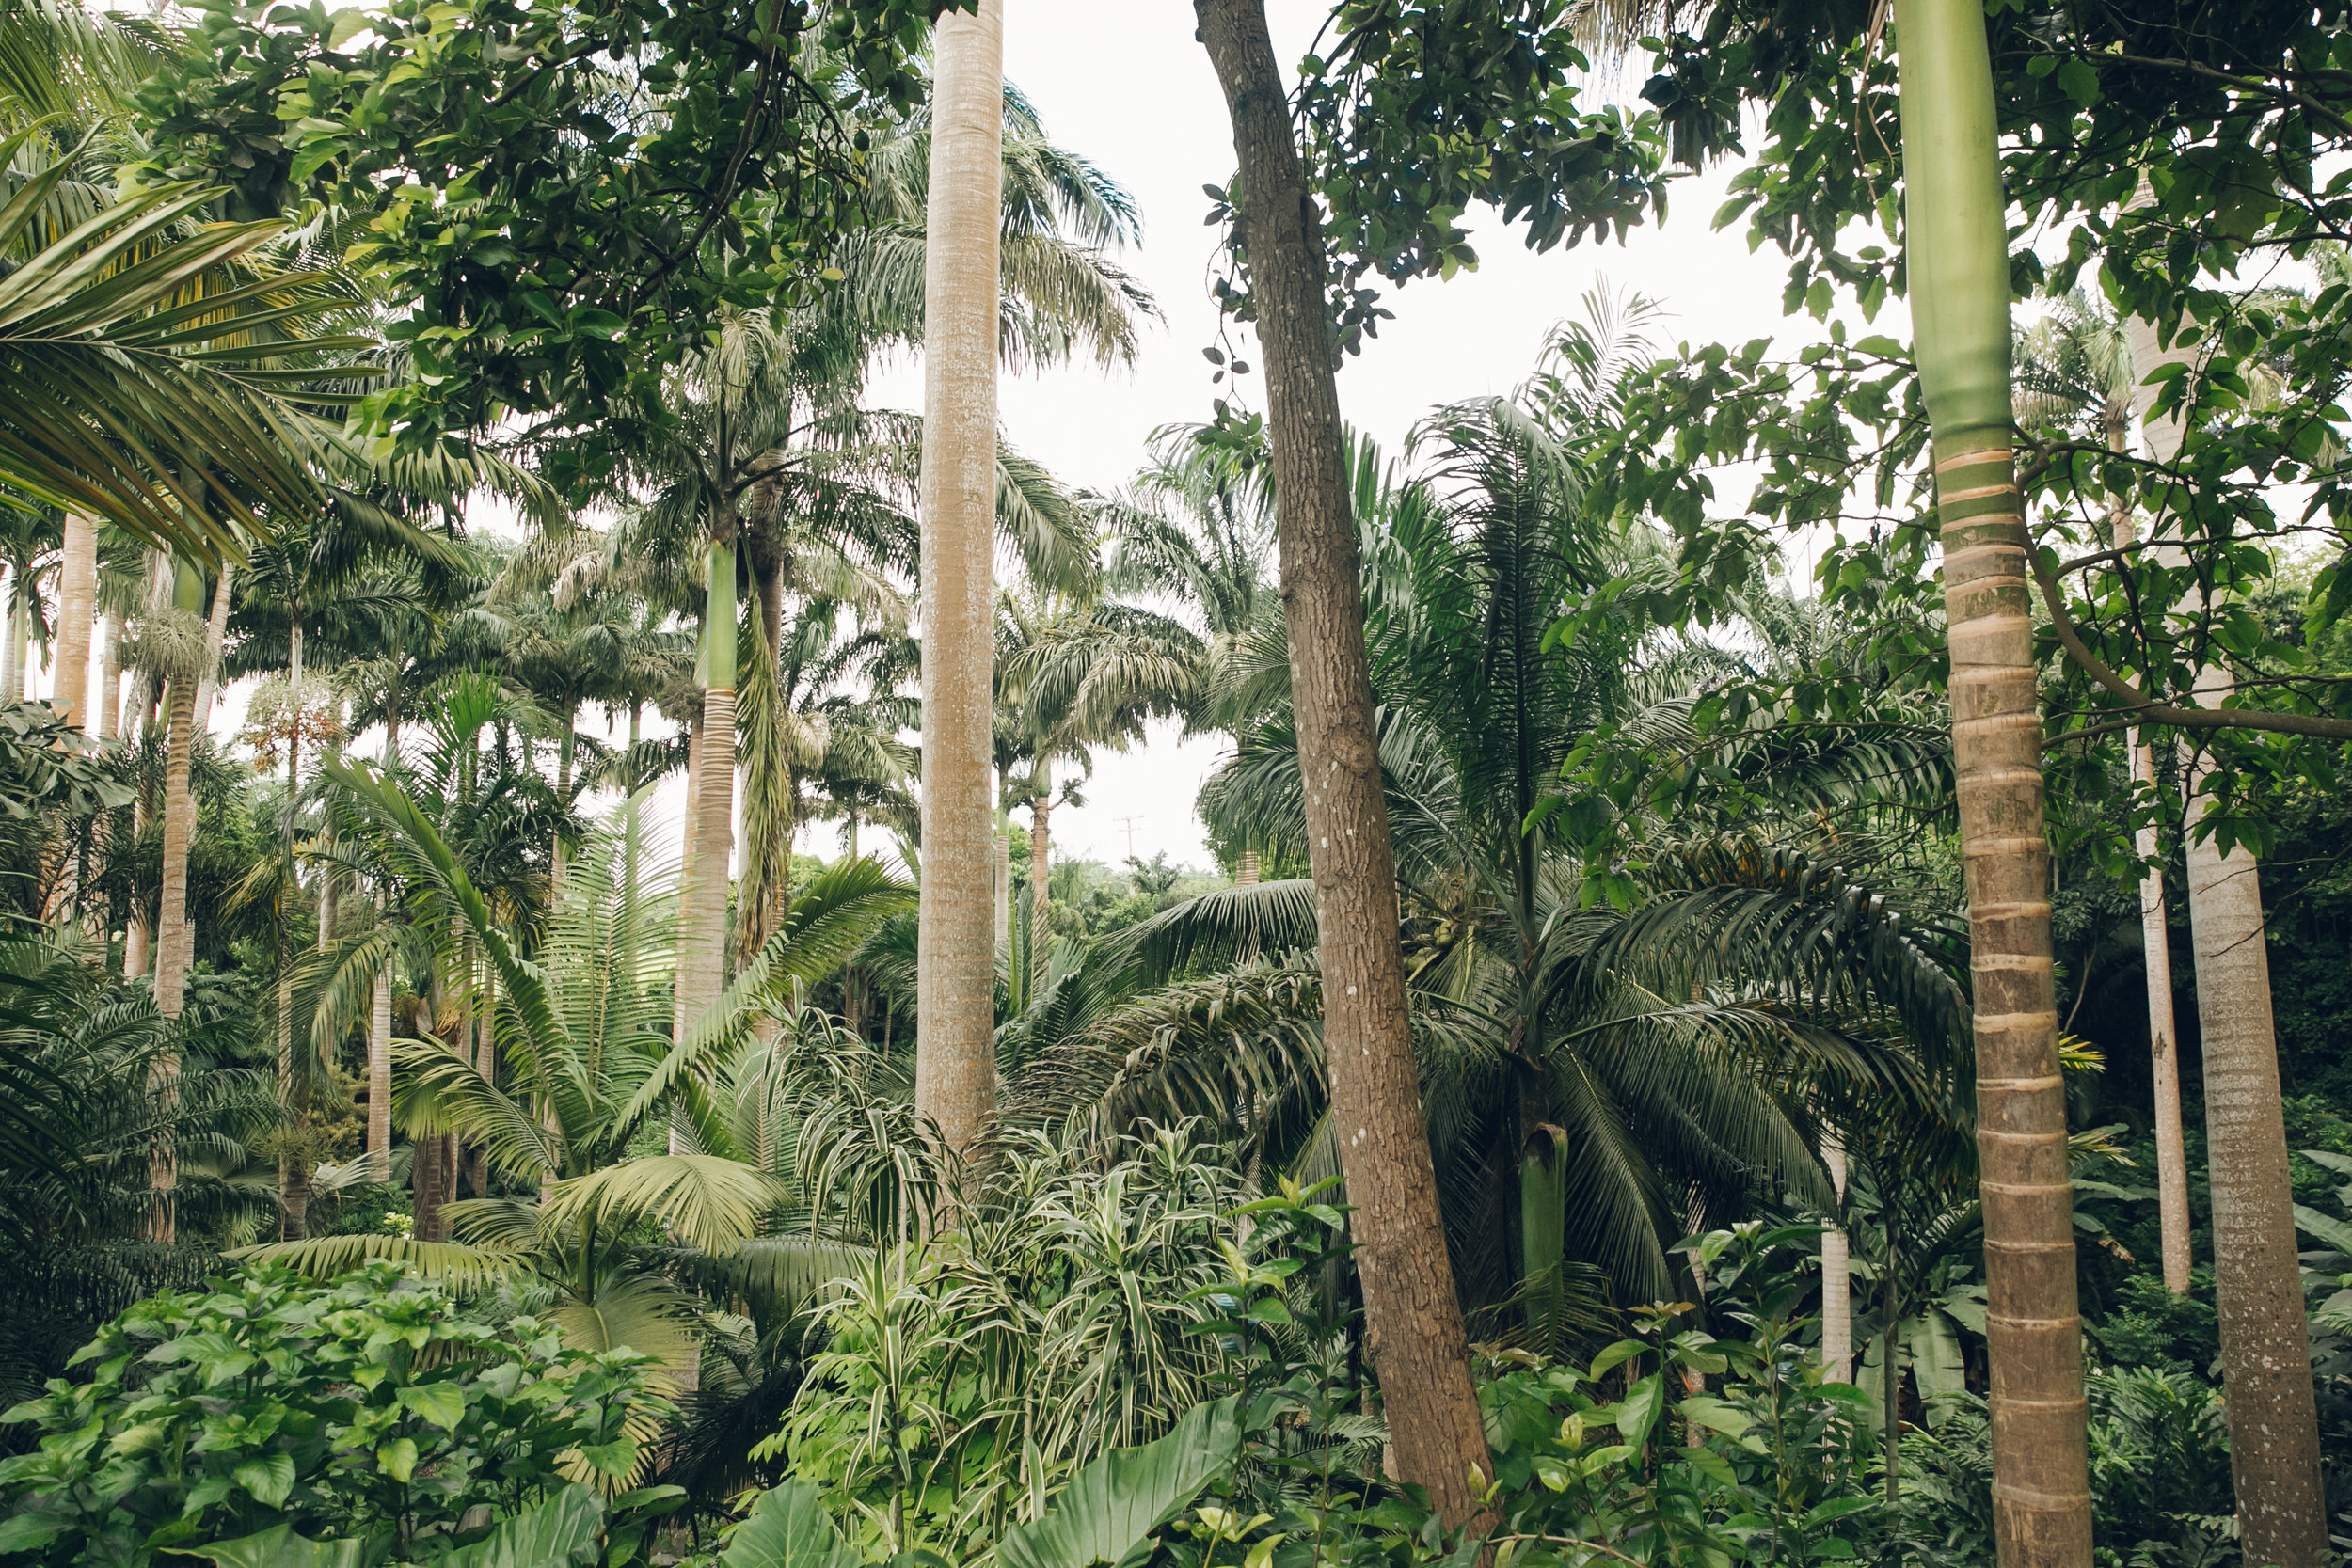 Tall Palm trees at Hunte's Garden in Barbados.